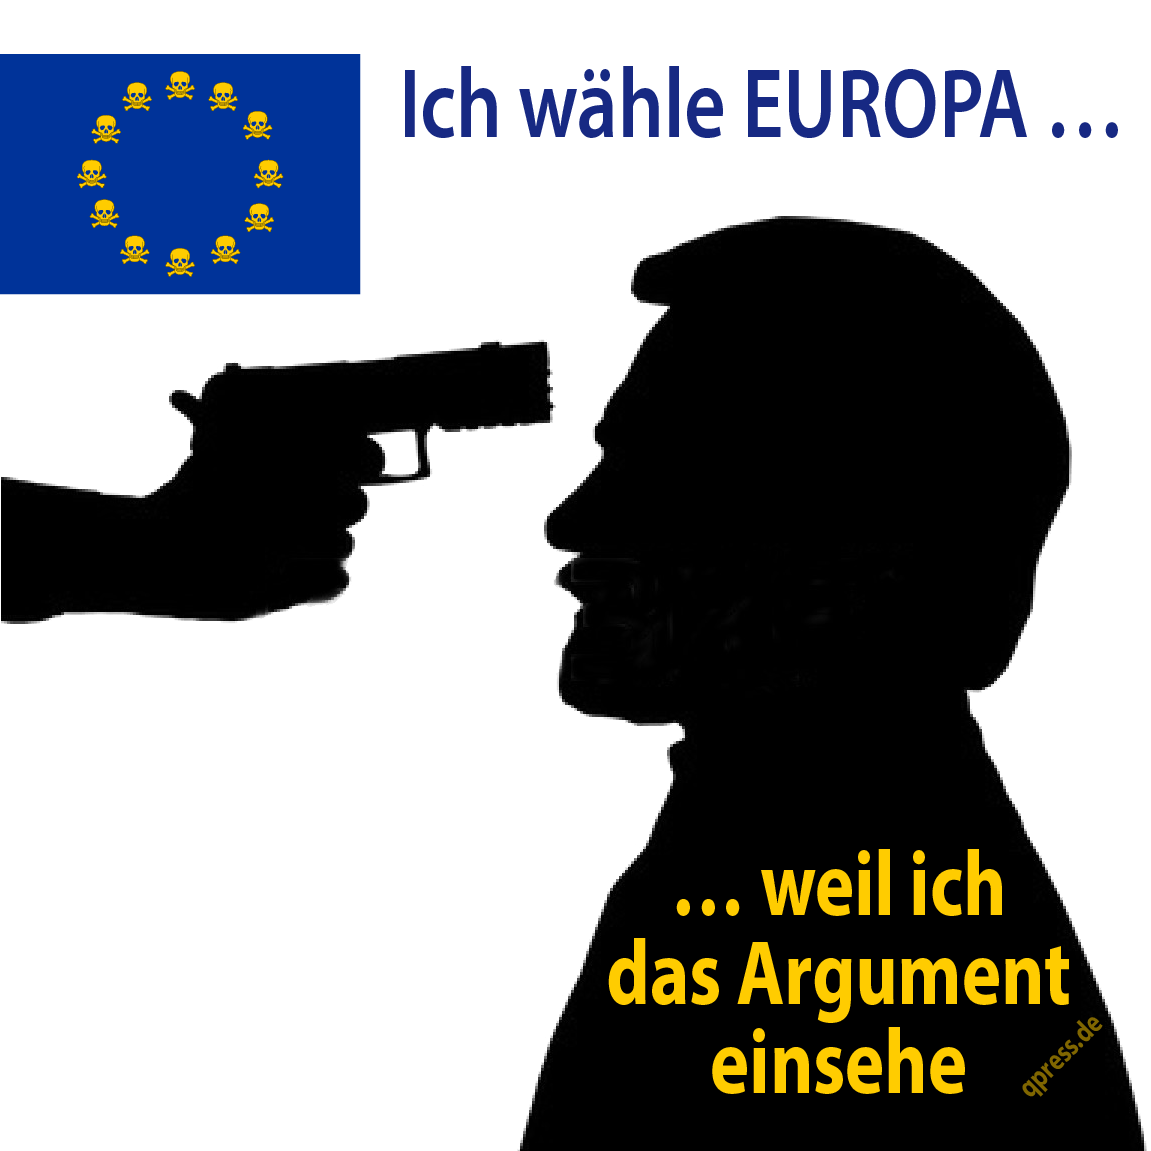 Ich waehle Europa, weil ich das Argument einsehe qpress-01